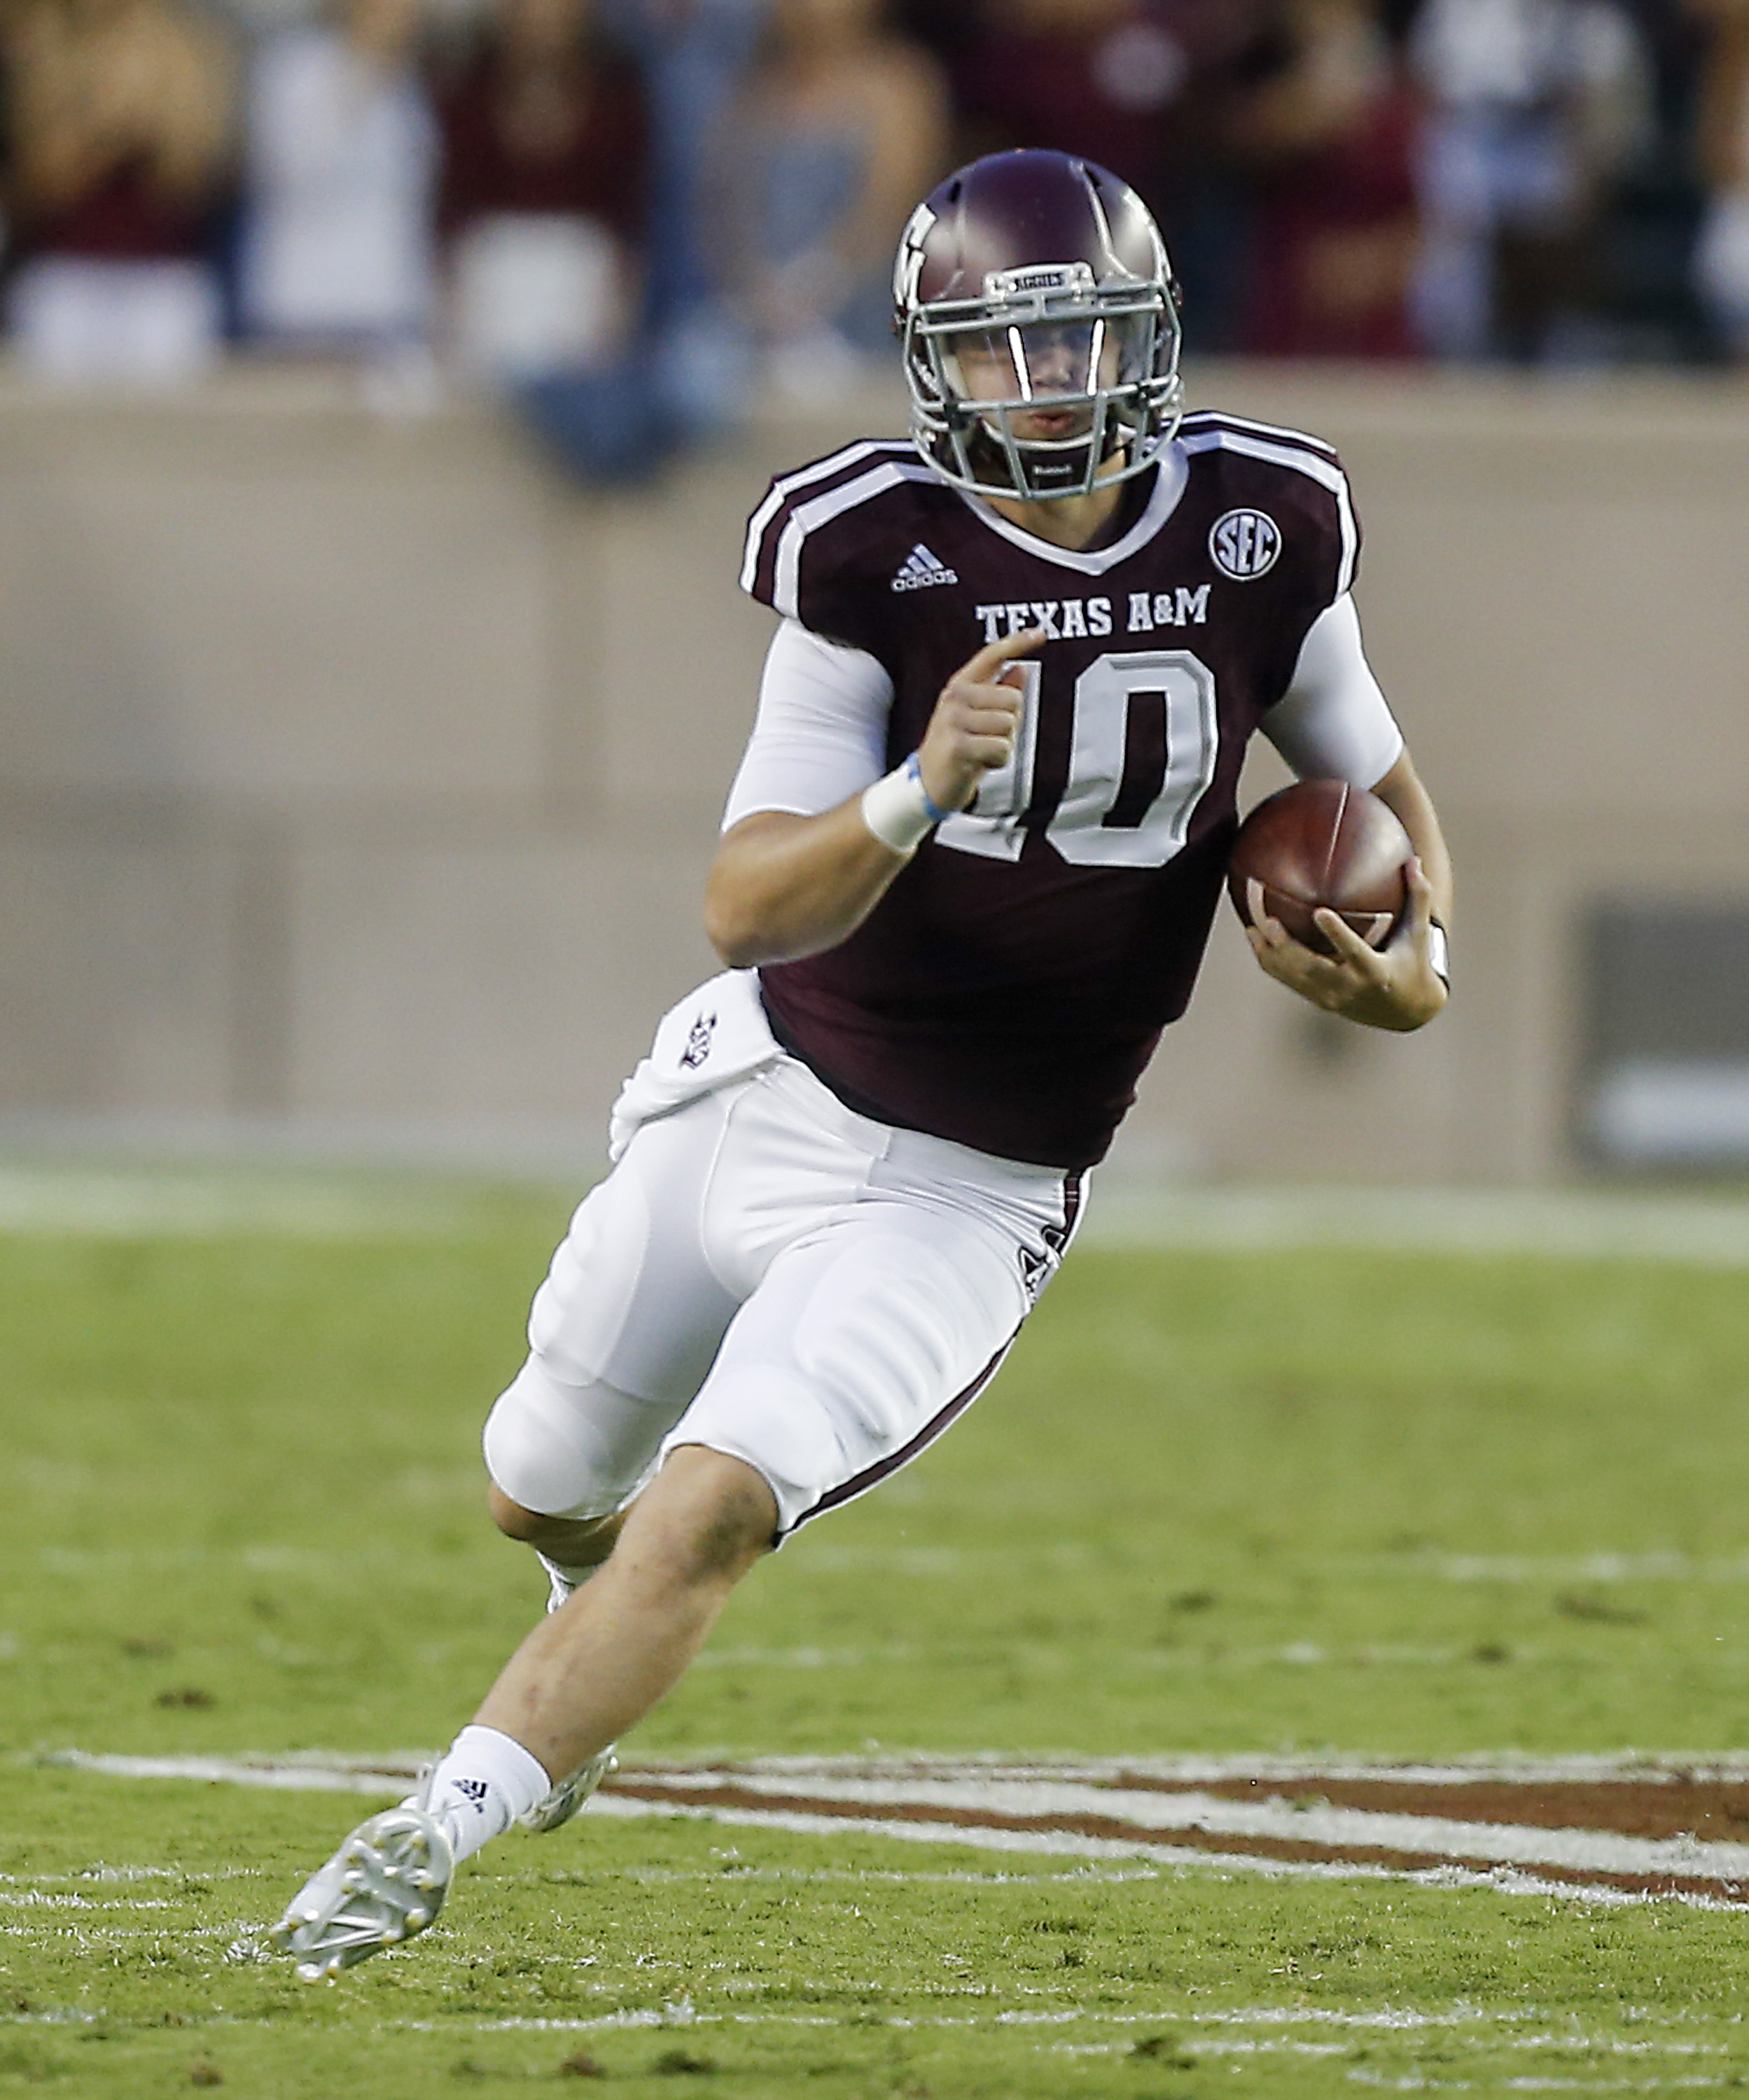 Texas A&M quarterback Kyle Allen (10) scrambles out of the pocket against Mississippi State during the first half of an NCAA college football game, Saturday, Oct. 3, 2015, in College Station, Texas. (AP Photo/Bob Levey)